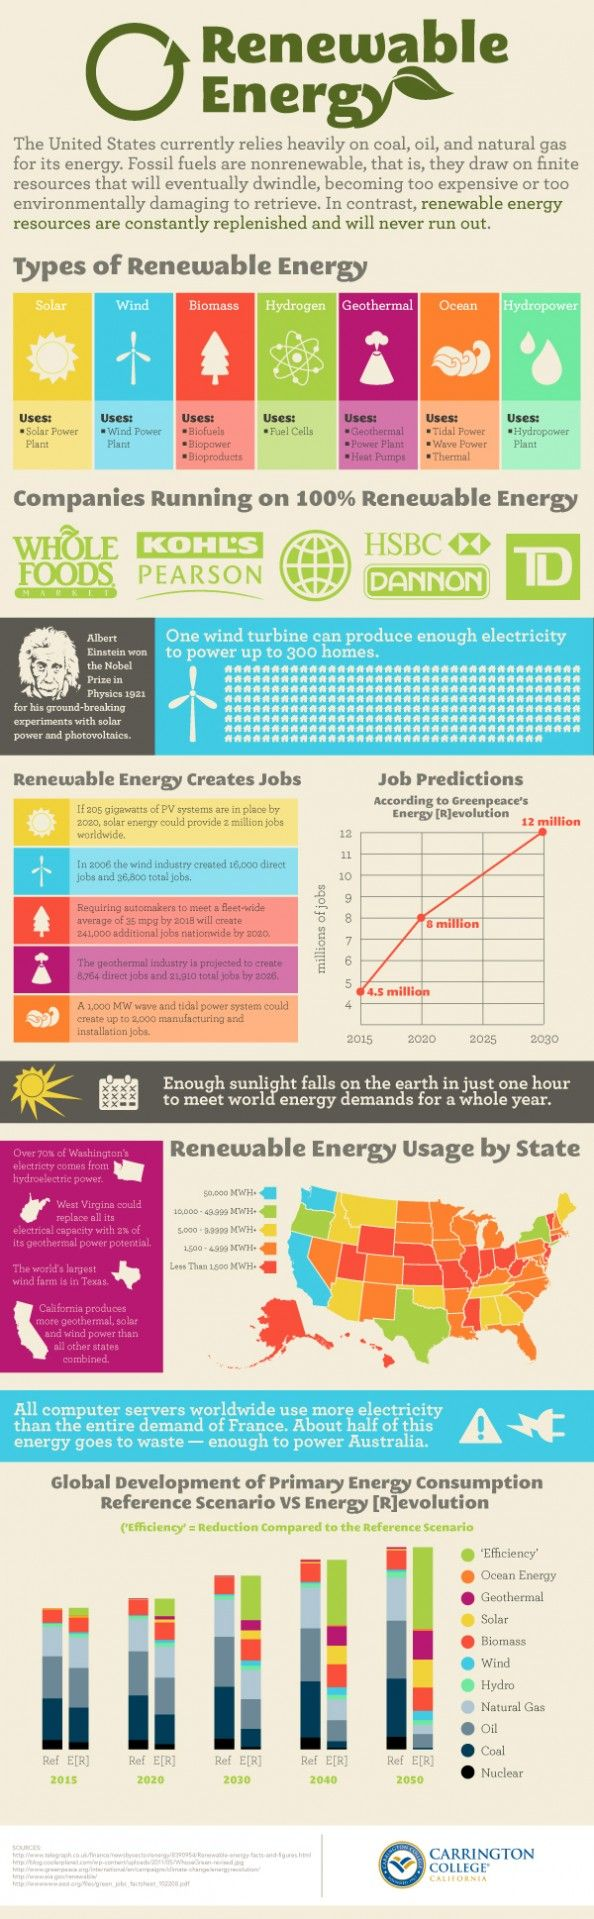 Pin By Dunford Enterprises On Business Culture Renewable Energy Solar System Diagram A Newbies Guide To Http Visually